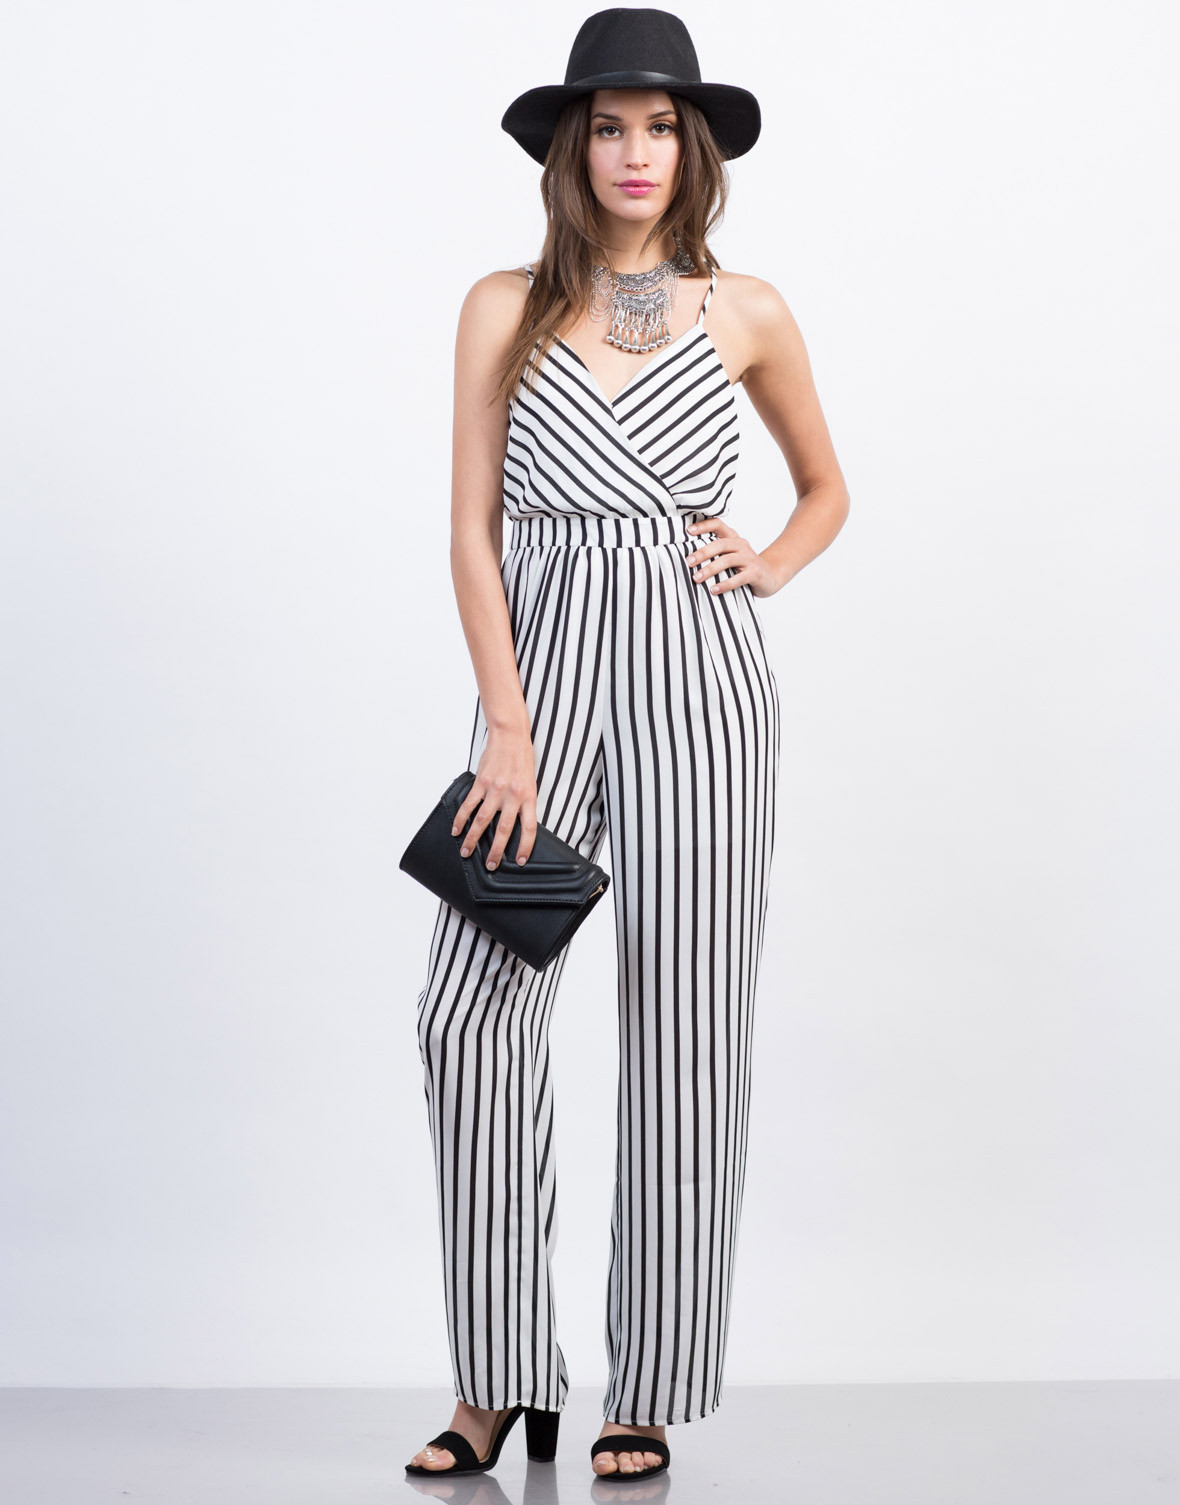 7 Jumpsuits To Wear To All The Summer Weddings On Your Calendar